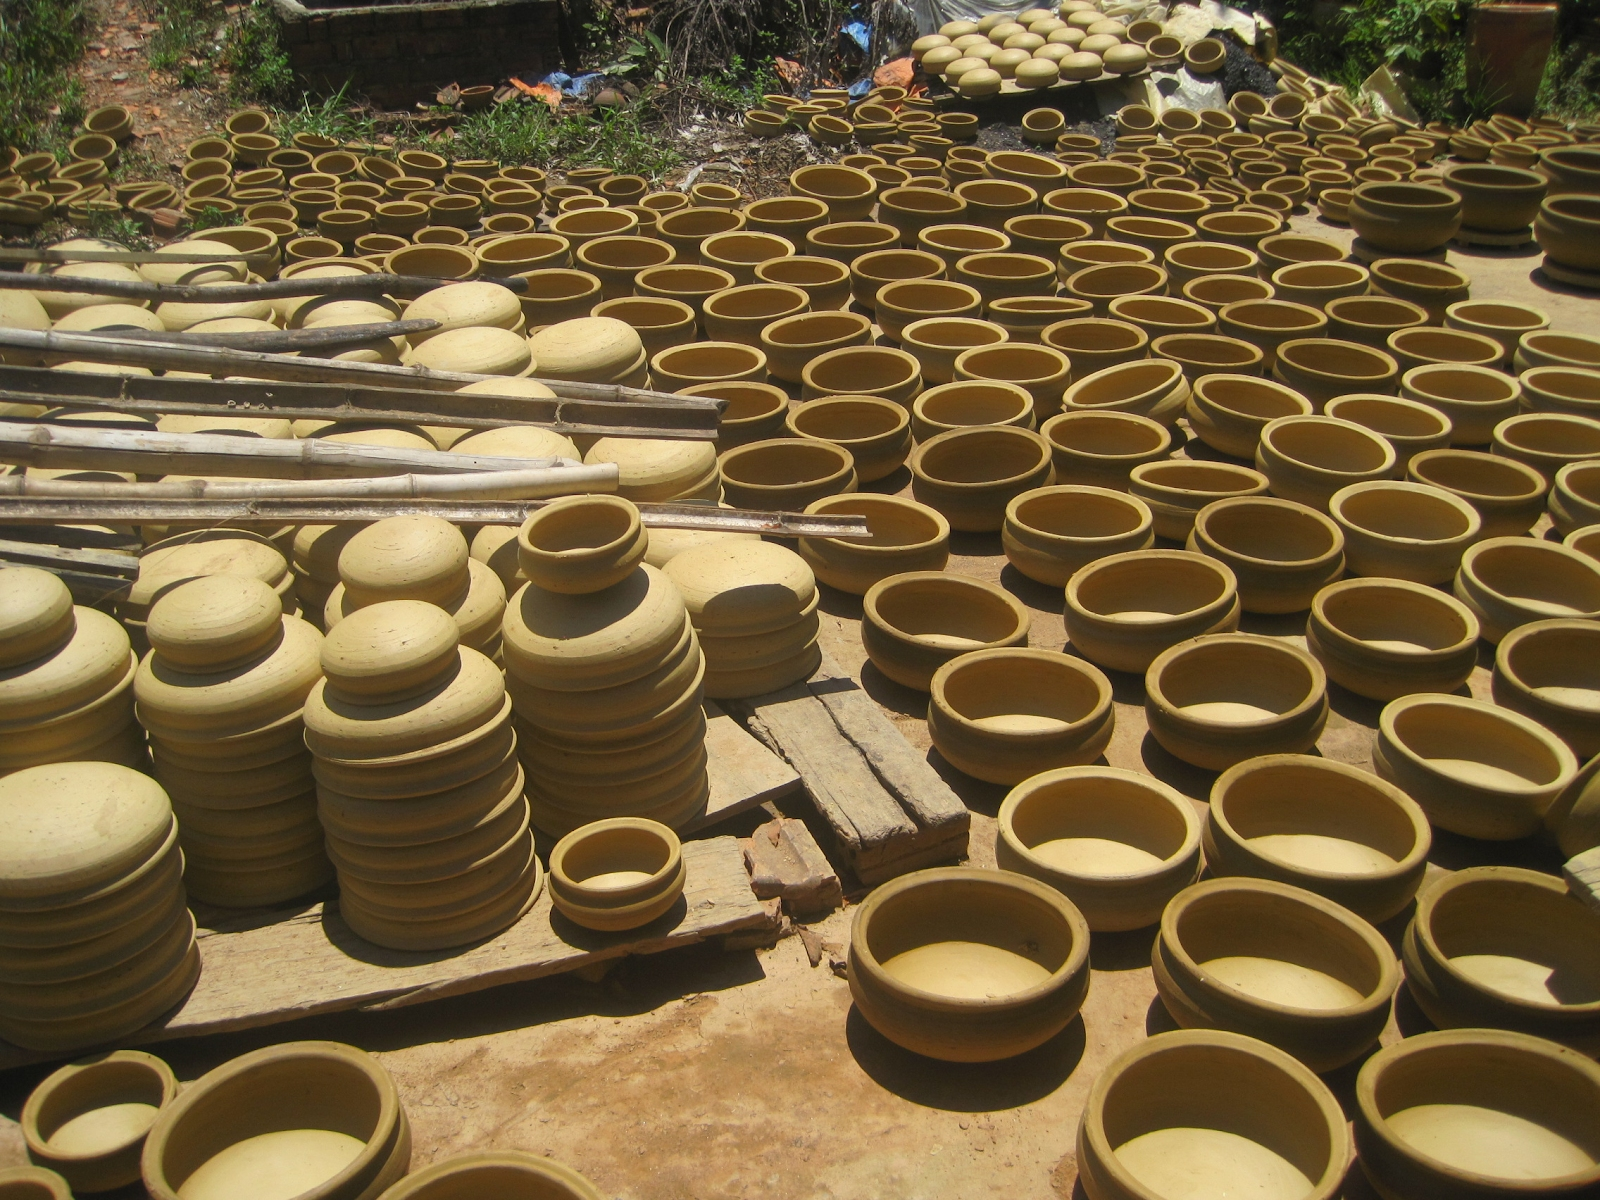 pottery-village-festival-hoi-an